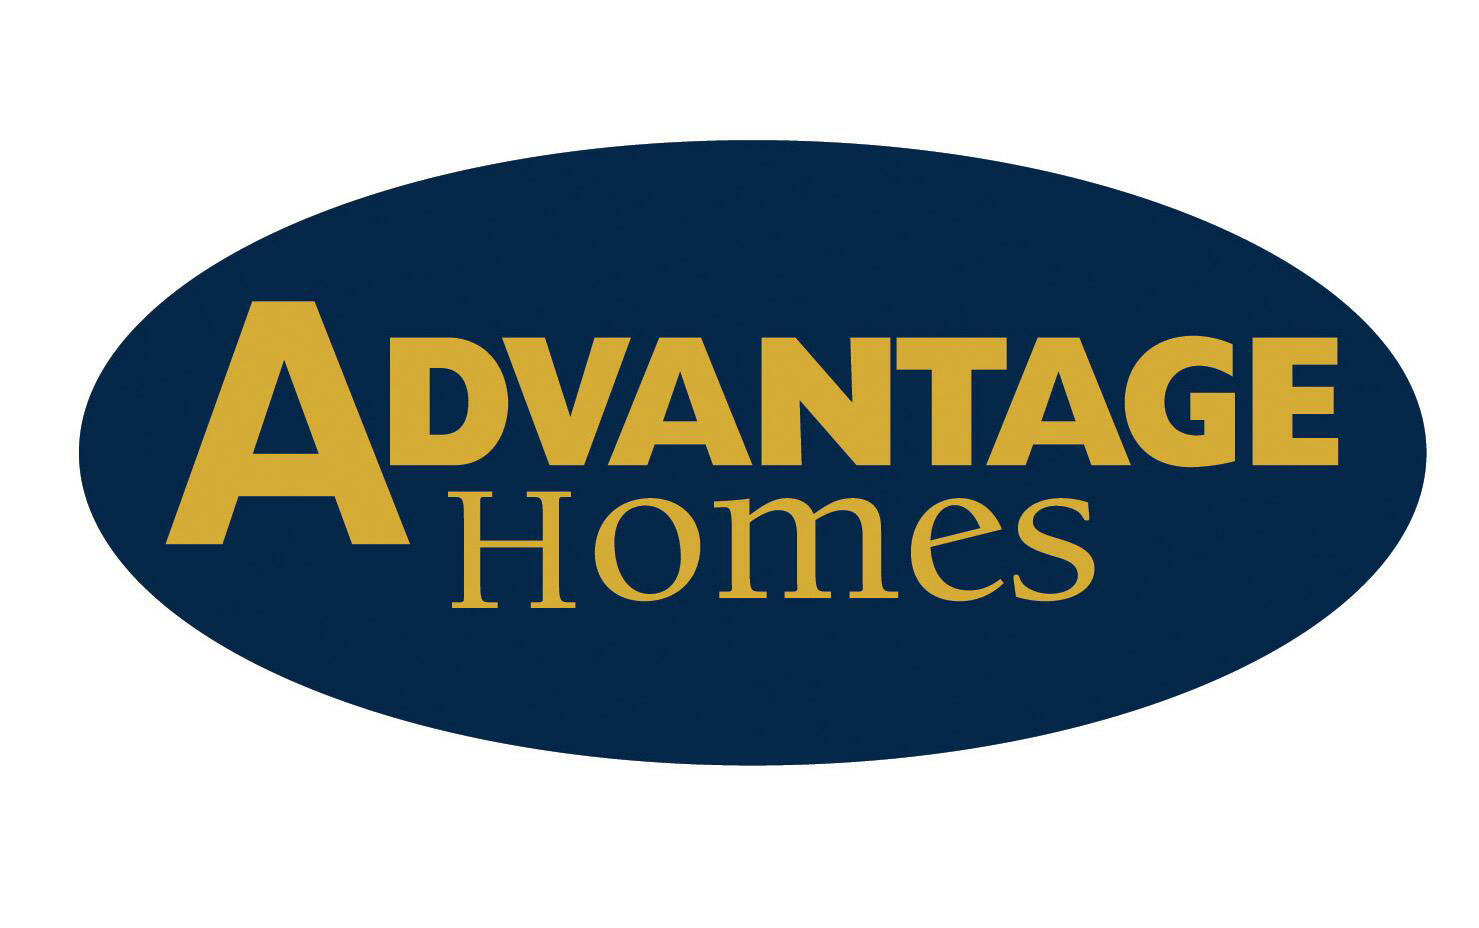 Advantage homes llc recognized for energy saving homes for Builders advantage